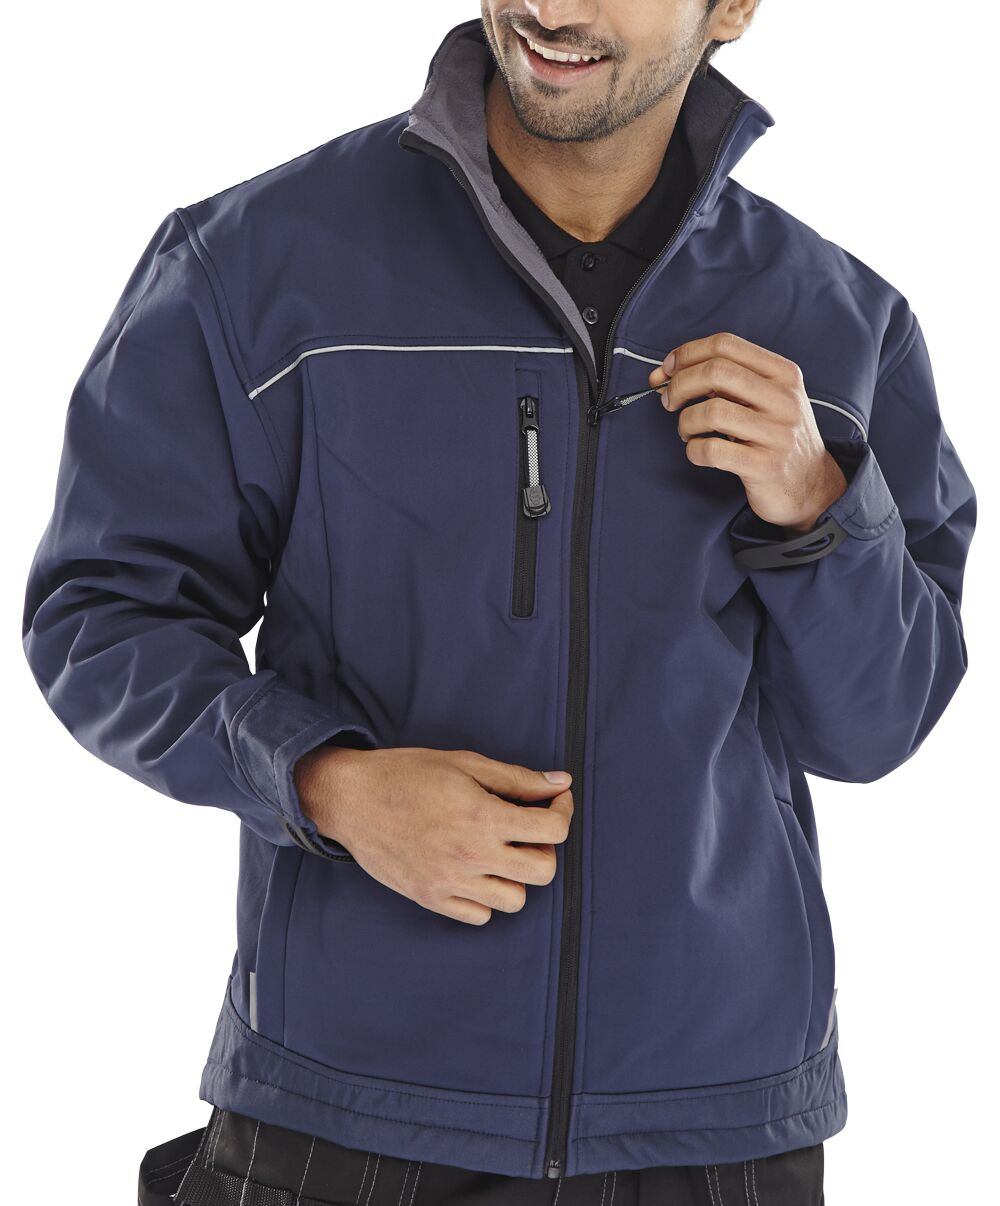 Body Protection Click Workwear Soft Shell Jacket Water Resistant Windproof Medium Navy Ref SSJNM *Approx 3 Day Leadtime*